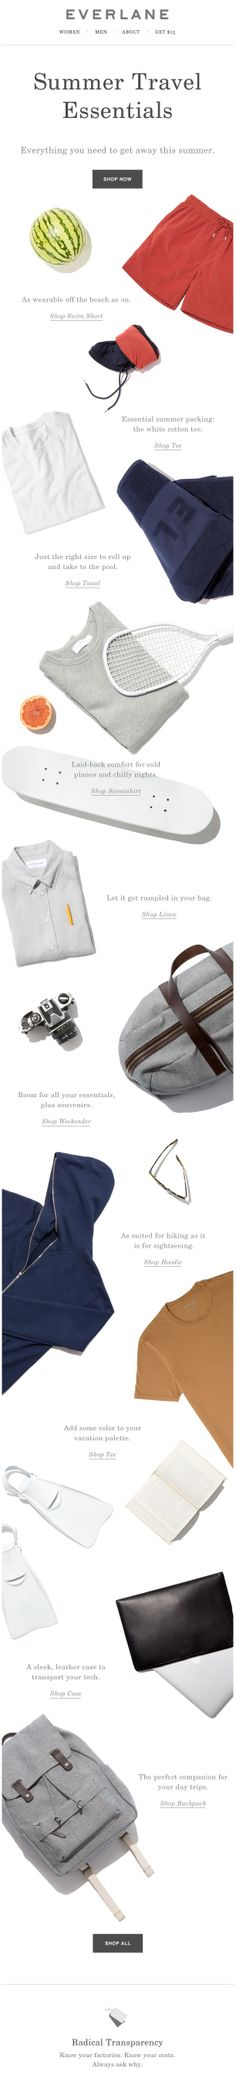 Everlane : Top Products